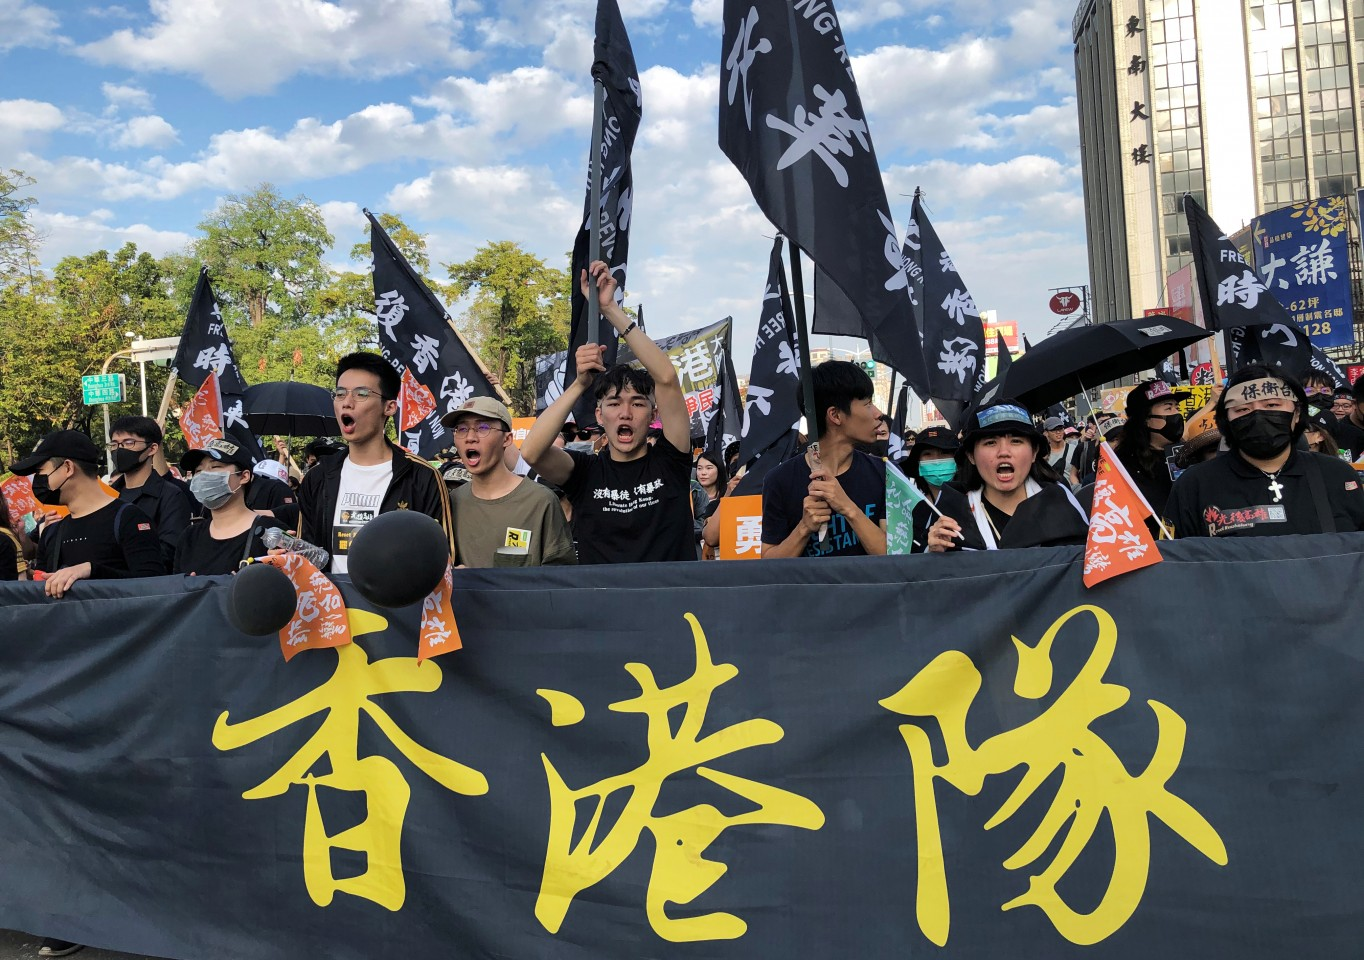 Protesters hold banners and flags in support of Hong Kong's pro-democracy protests, during a rally against main opposition Kuomintang party's presidential candidate Han Kuo-yu, in Kaohsiung, Taiwan on December 21, 2019. (Yimou Lee/Reuters)